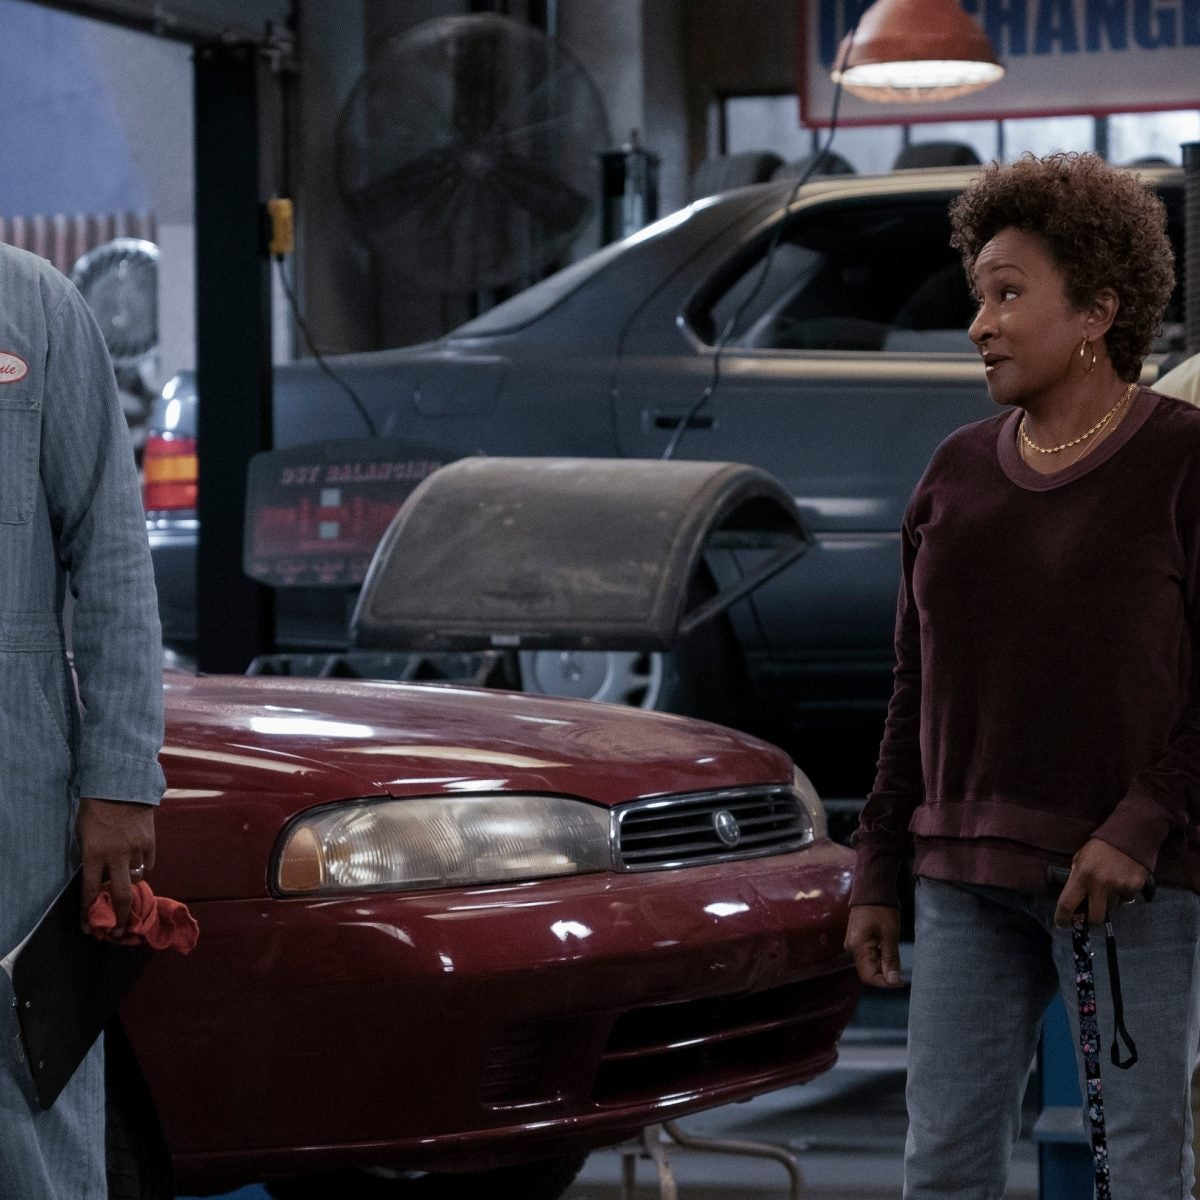 Wanda Sykes On 'The Upshaws' Representing Real Black Families: 'It Always Seems Like Either We're Super Rich Or We're Slaves'